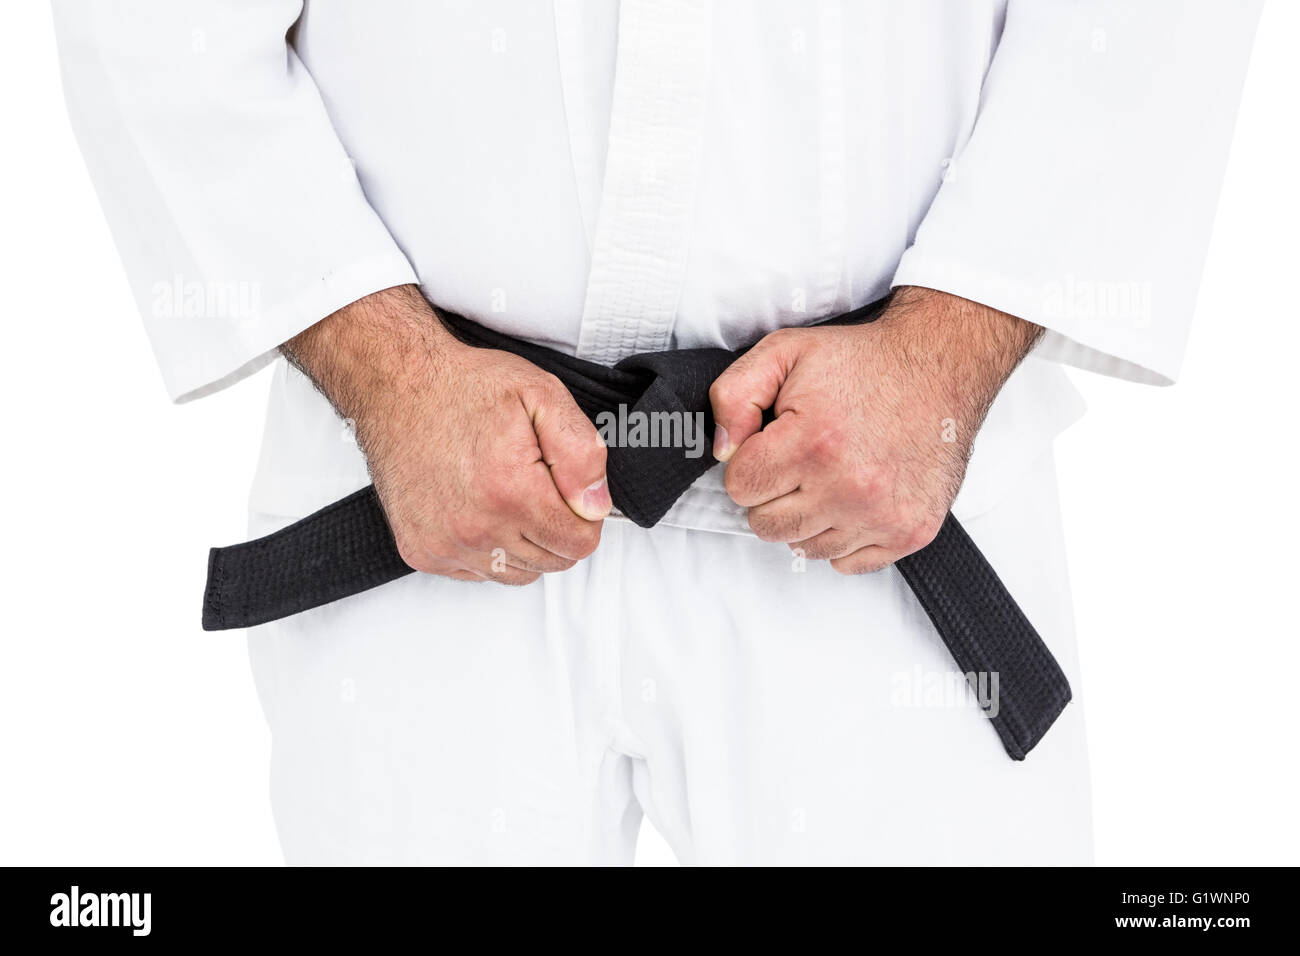 Close-up of karate fighter making fists - Stock Image